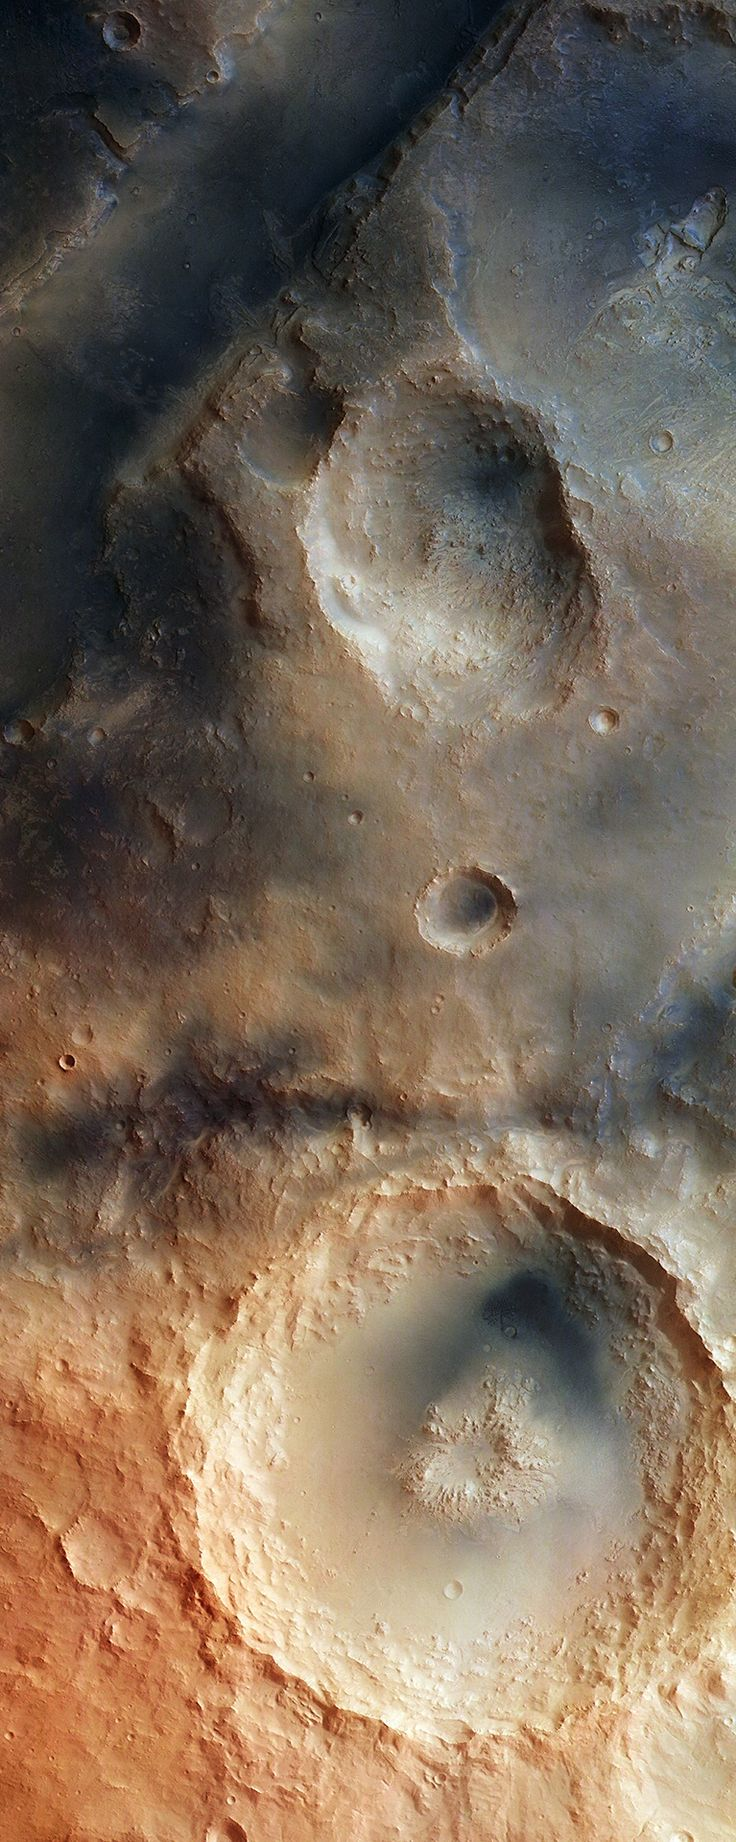 astronomicalwonders:  The Syrtis Major Volcanic Province - The Martian Surface Acquired by the High Resolution Stereo Camera on ESA's Mars Express Satellite, this image depicts a detailed region of the Martian Nili Fossae Graben system. This system is an area of great interest to geologists due to the variety of its landscape. The graben system contains numerous troughs, plateaus, impact craters and depressions. Planetary Scientists are actively studying the data collected from ESA's Mars…